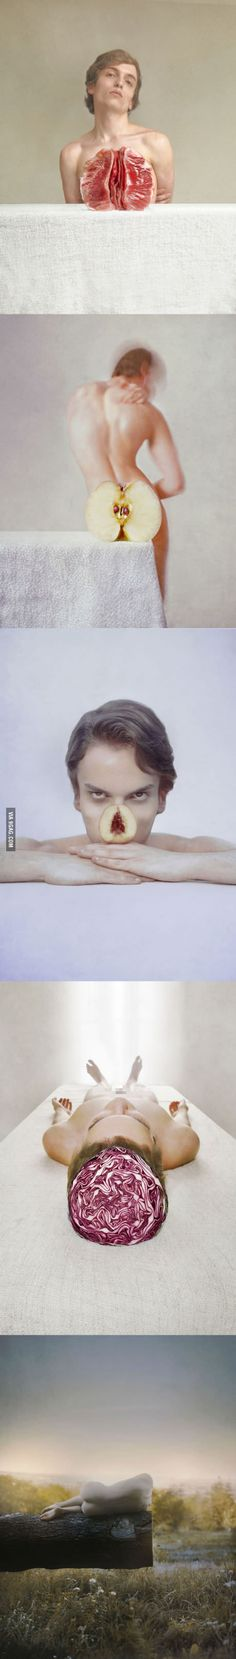 """Métaphores"", series of photos using forced perspective & fruits to create optical illusions"